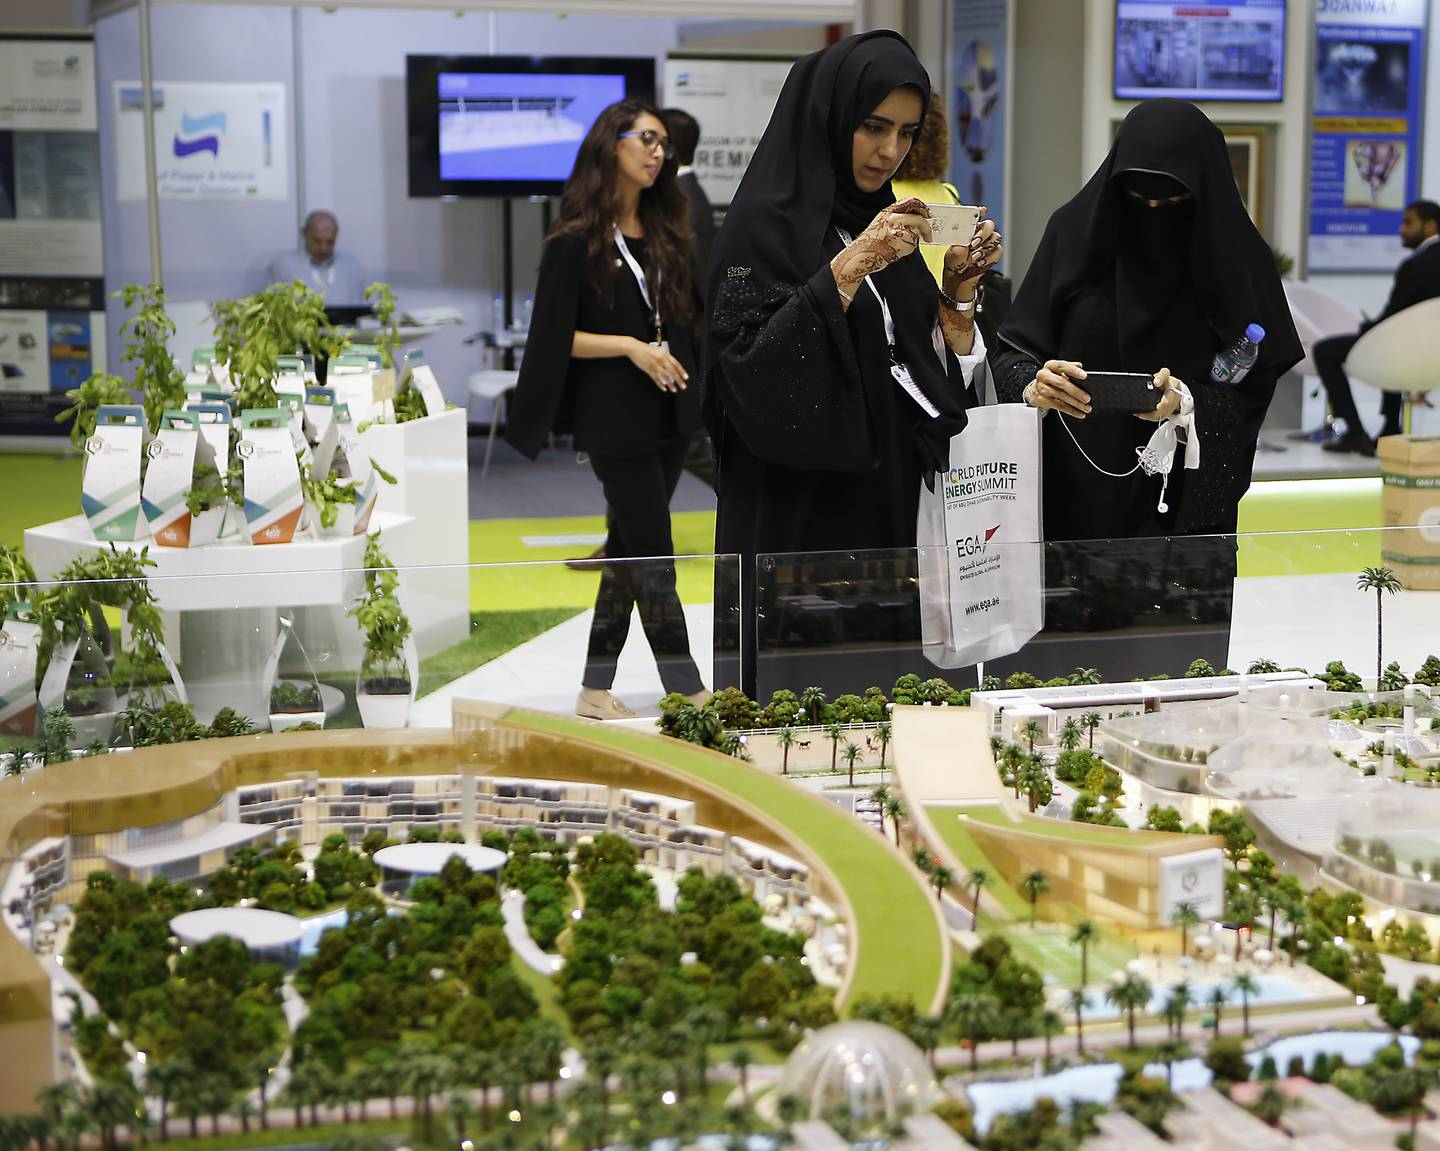 ABU DHABI, UNITED ARAB EMIRATES -17January 2017 - Visitors take photographs of Sustainable City in Dubai regions first Net Zero Operational Sustainable community model displayed at the World Future Energy Summit 2017 at the Abu Dhabi Exhibition Centre. Ravindranath K / The NationalID: 62760 (to go with LeAnne Graves, Dania Al Saadi and Tony McAuley story for Business) *** Local Caption ***  RK1701-WFES18.jpg